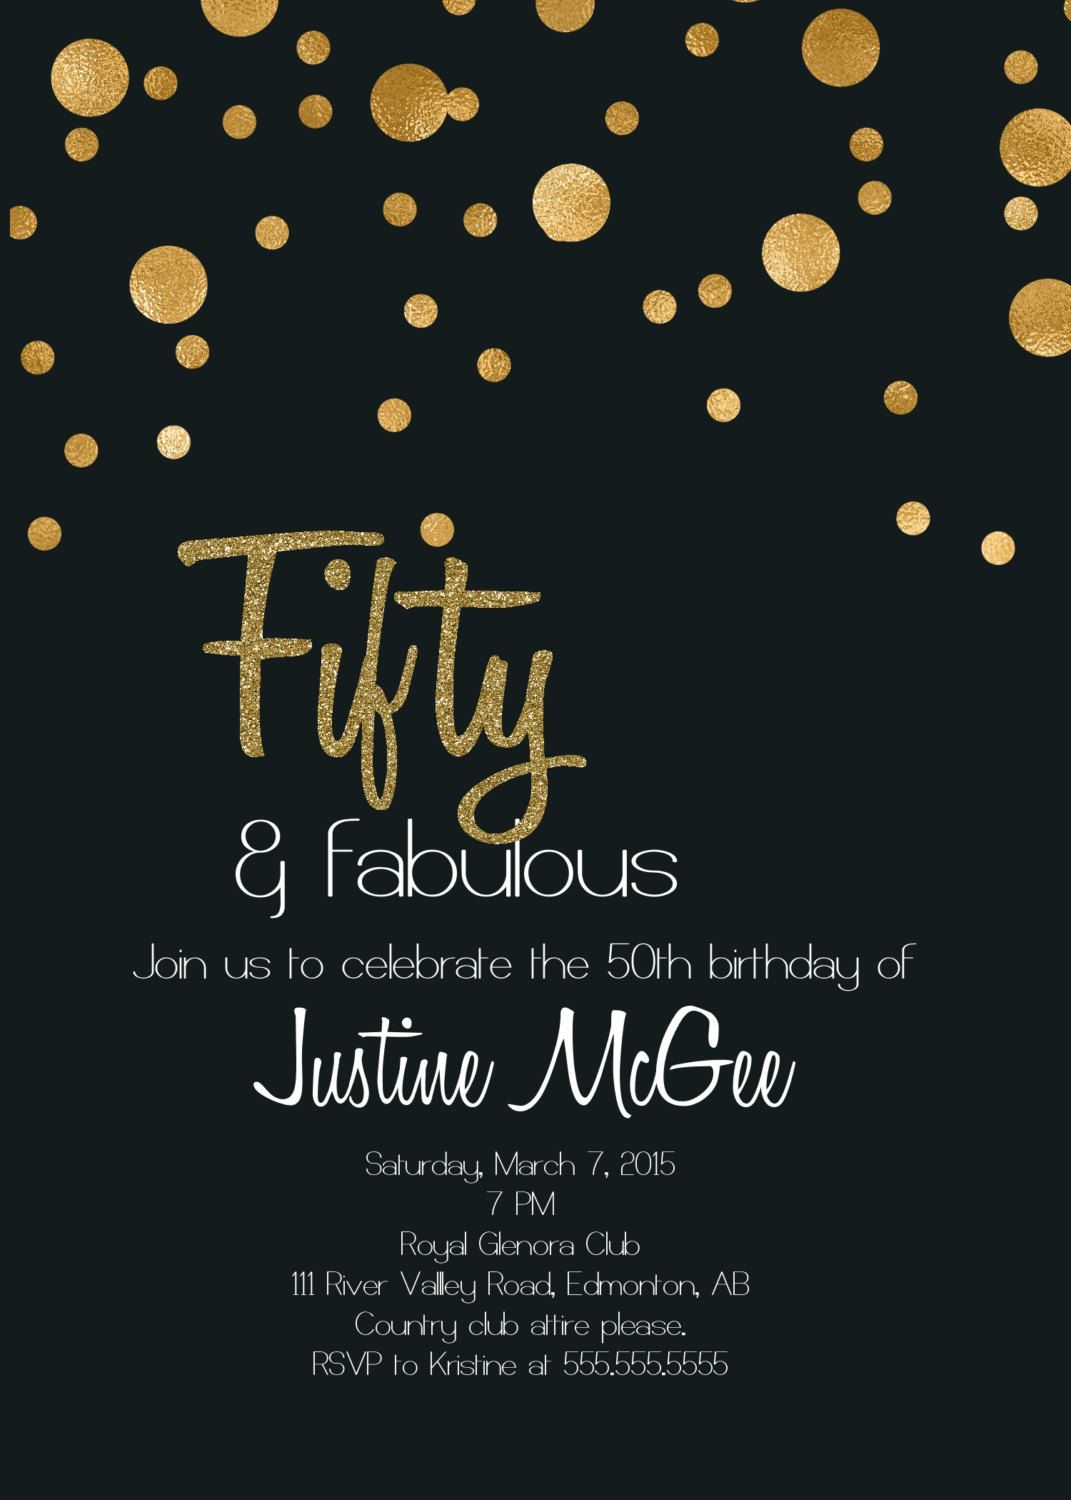 Classy Printable 50th Birthday Invitation With Gold Dots By Glassslipperdesigns On Etsy Double Click To View And Purchase